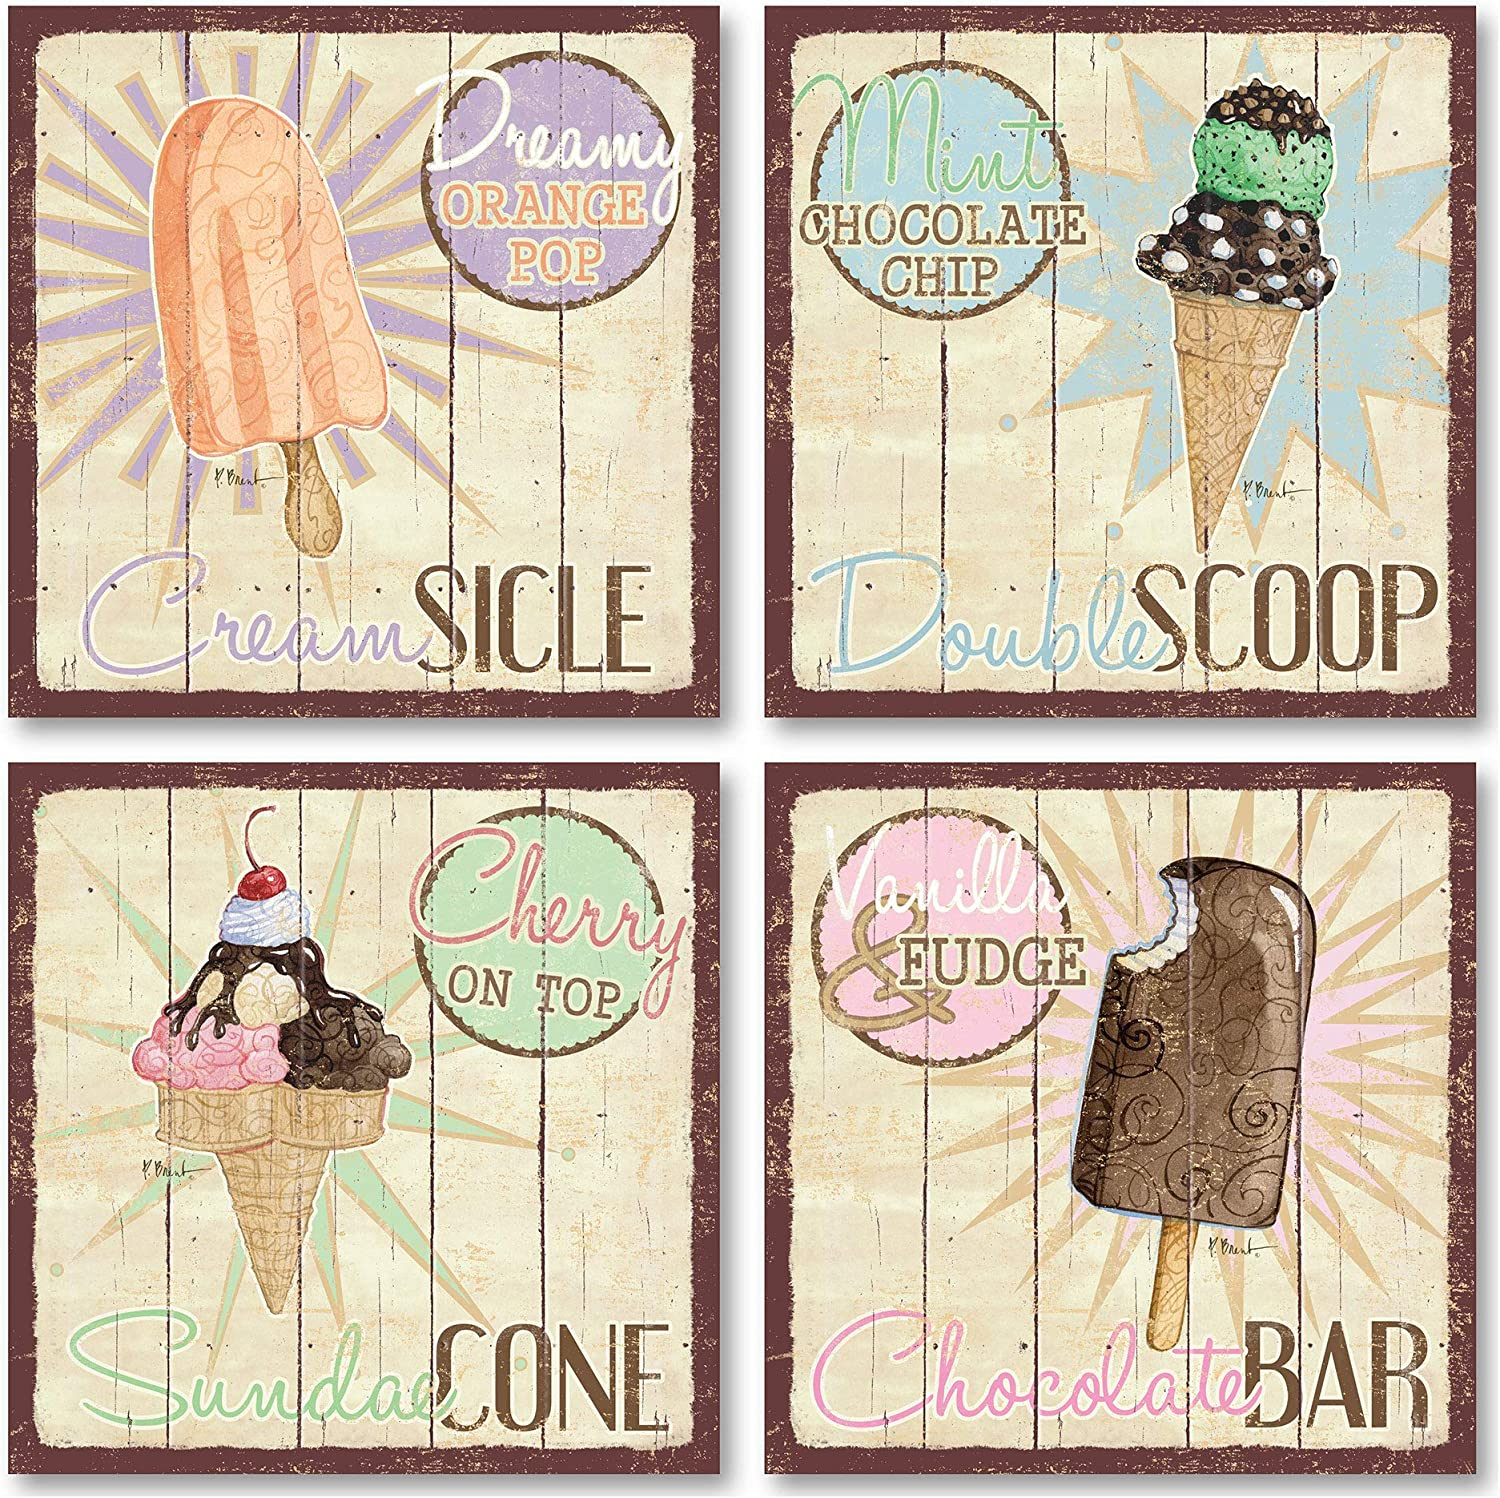 Vintage Ice Cream Shop Set, Double Scoop, Sundae Cone, Creamsicle, Chocolate Bar; Kitchen Décor; Four 12 x 12 Poster Prints